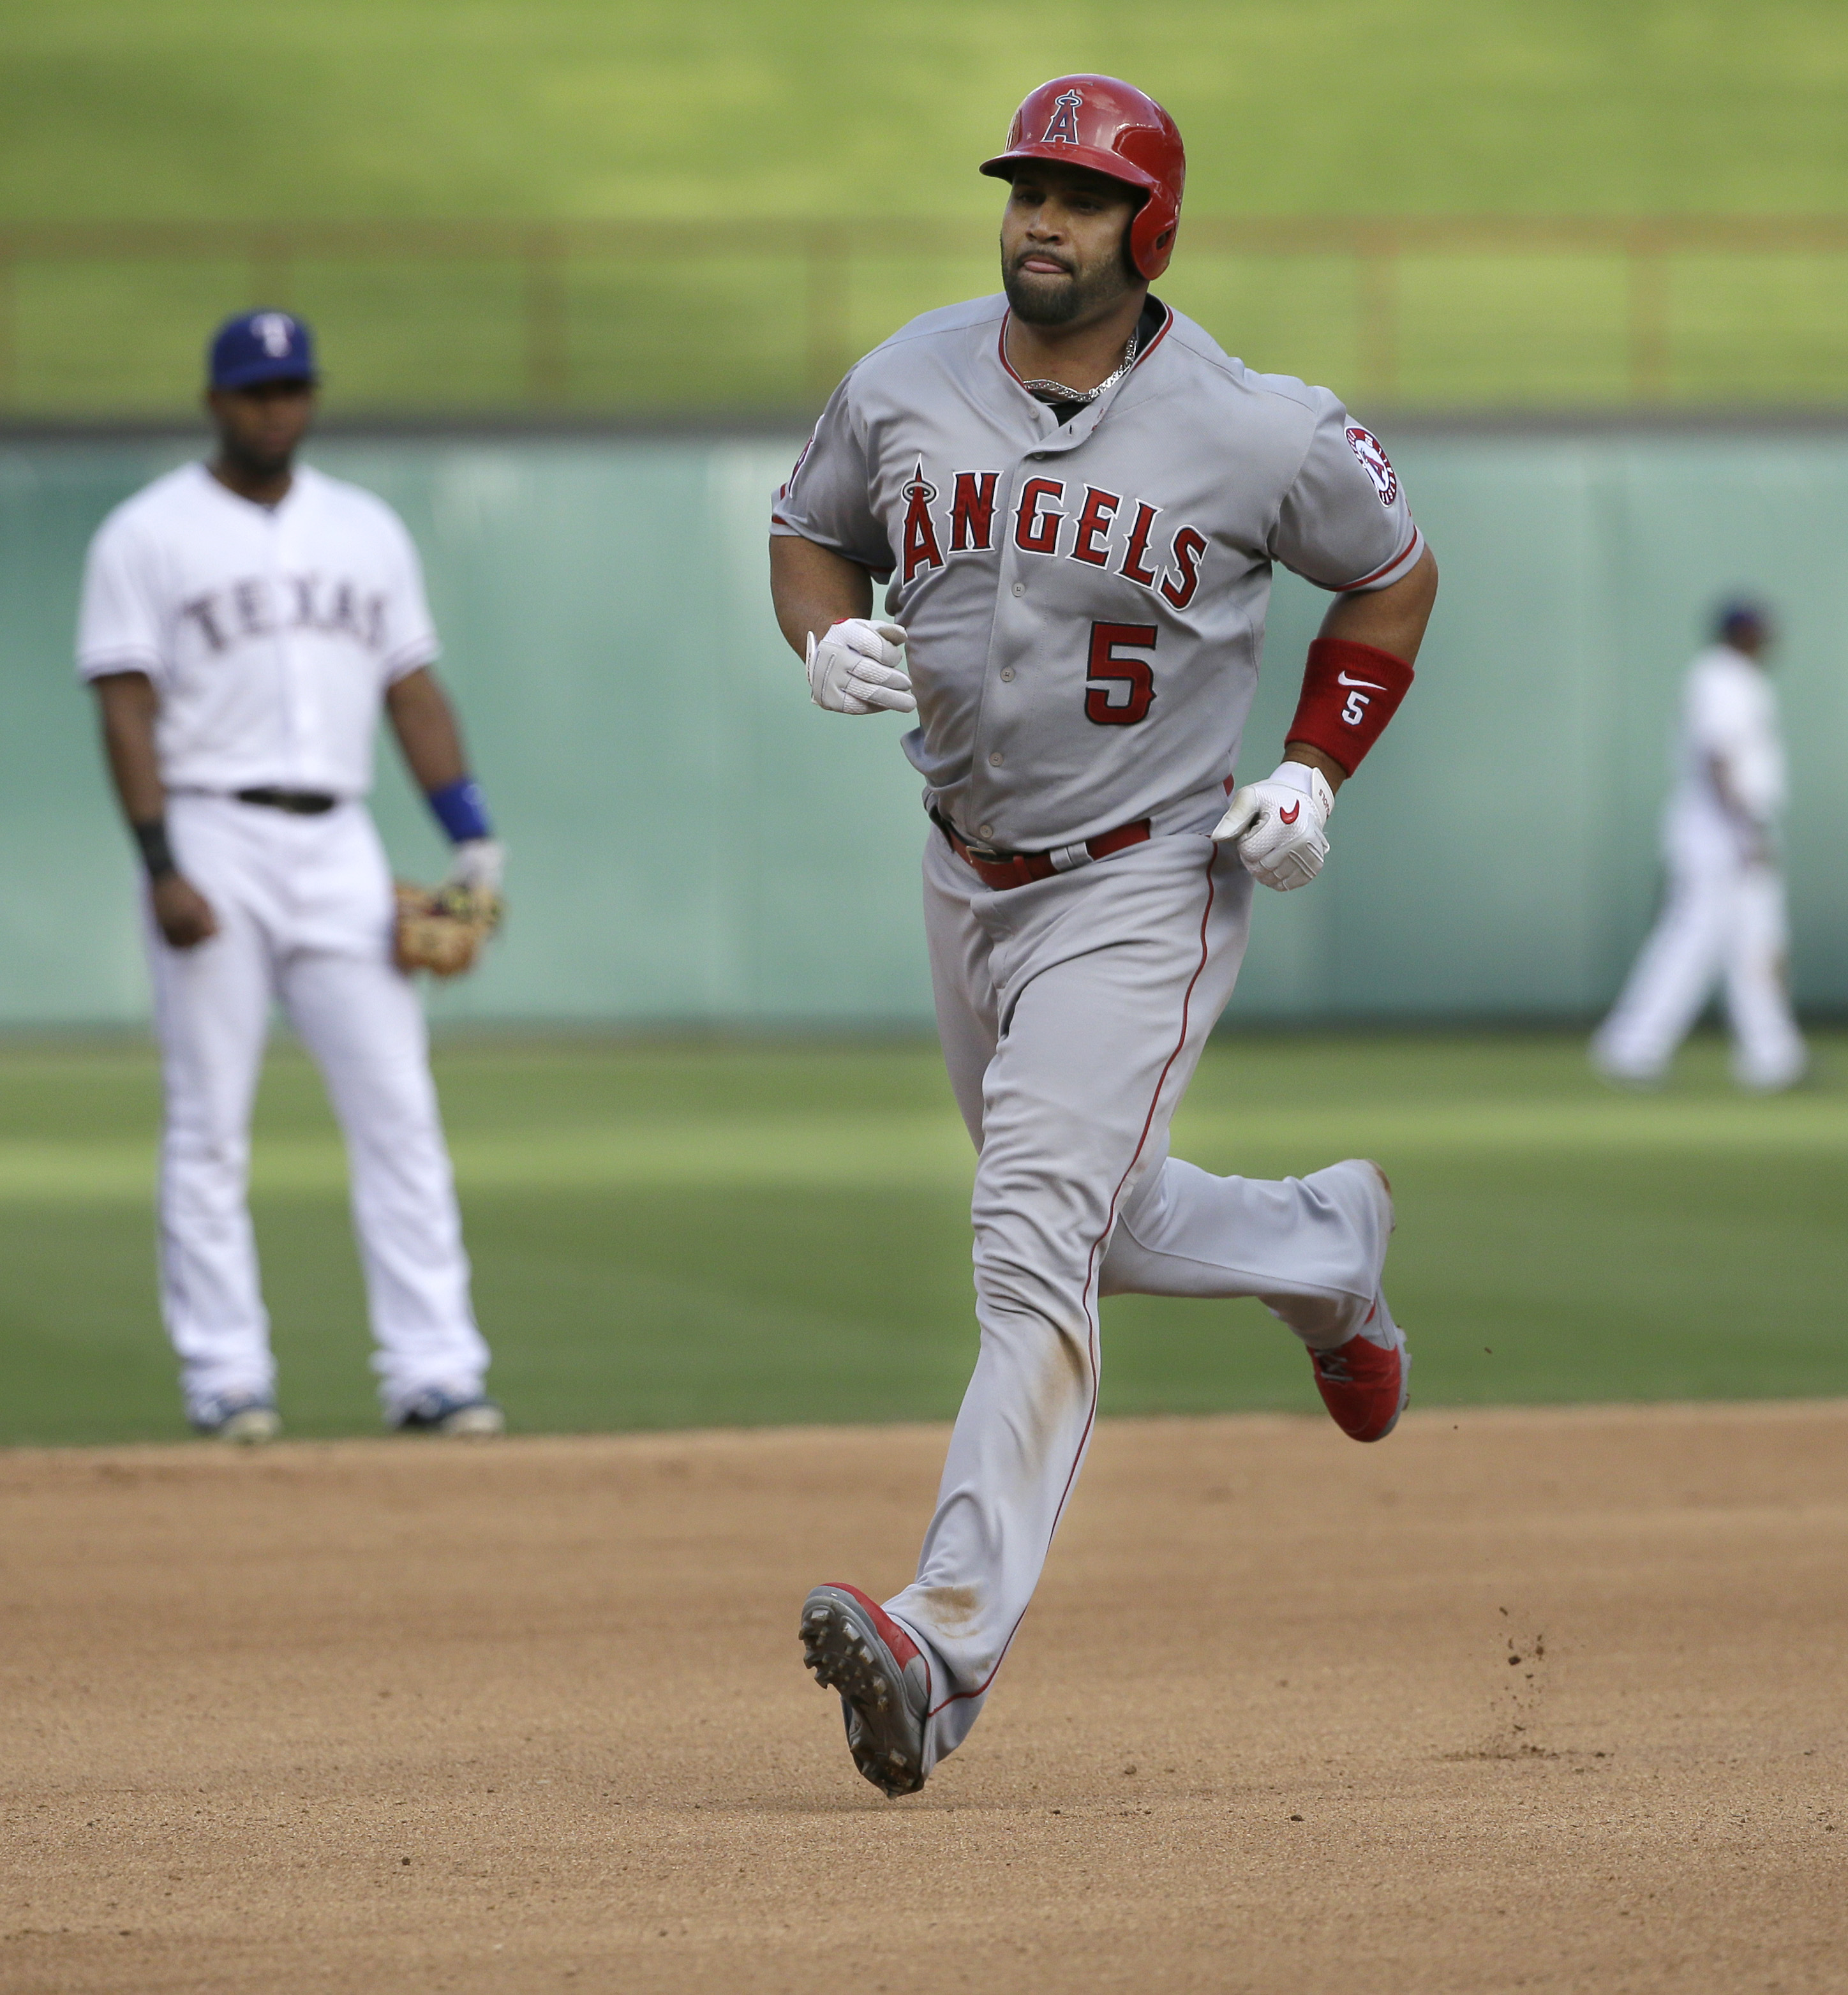 Los Angeles Angels Albert Pujols (5) runs the bases after his solo home run as Texas Rangers shortstop Elvis Andrus, left, looks on in the background during the fourth inning of a baseball game in Arlington, Texas, Sunday, July 5, 2015. (AP Photo/LM Otero